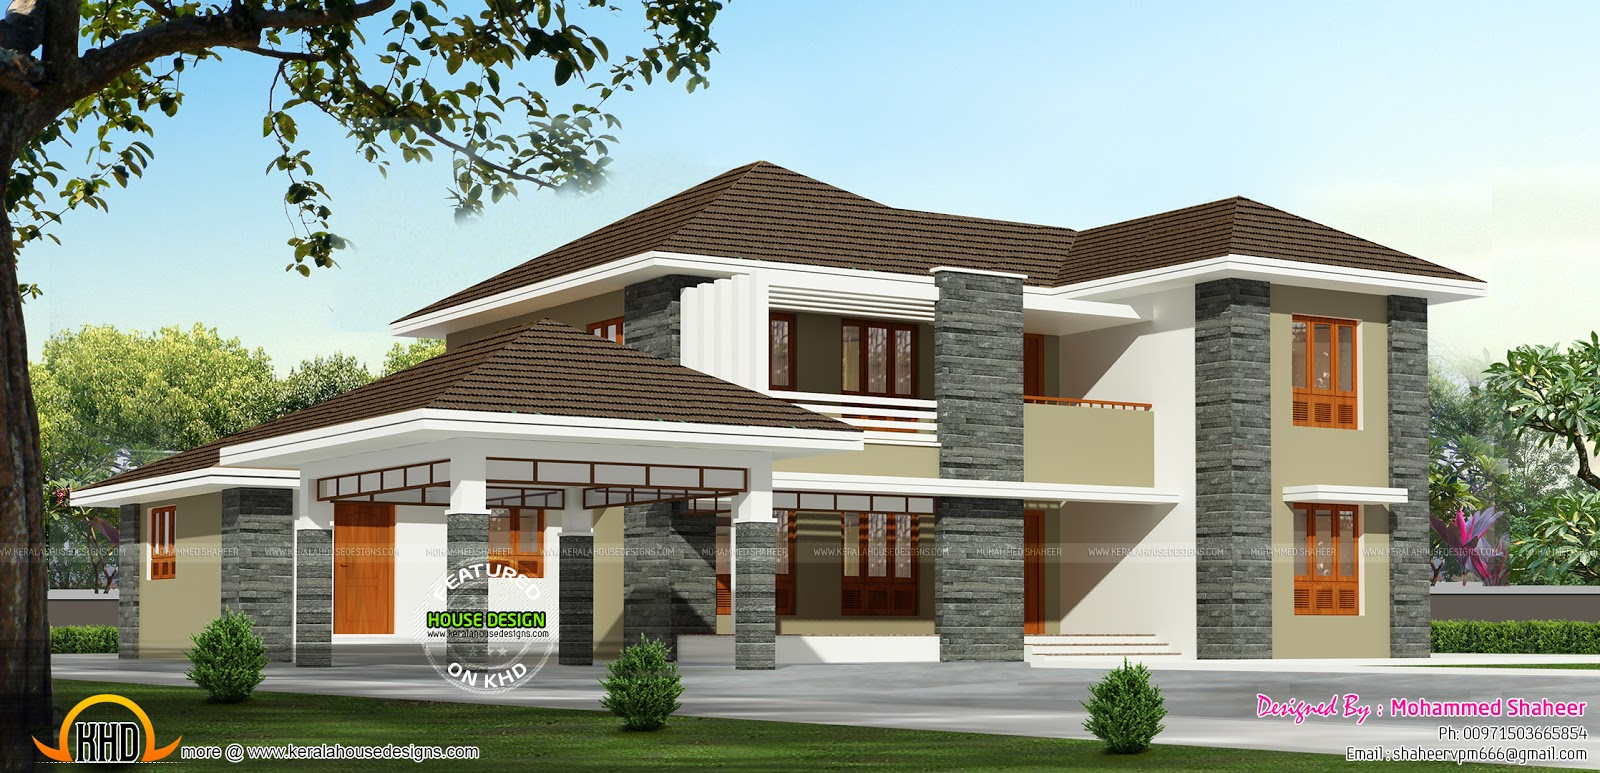 One Square Meter In Square Feet 2000 Square Foot House Kerala Home Design And Floor Plans